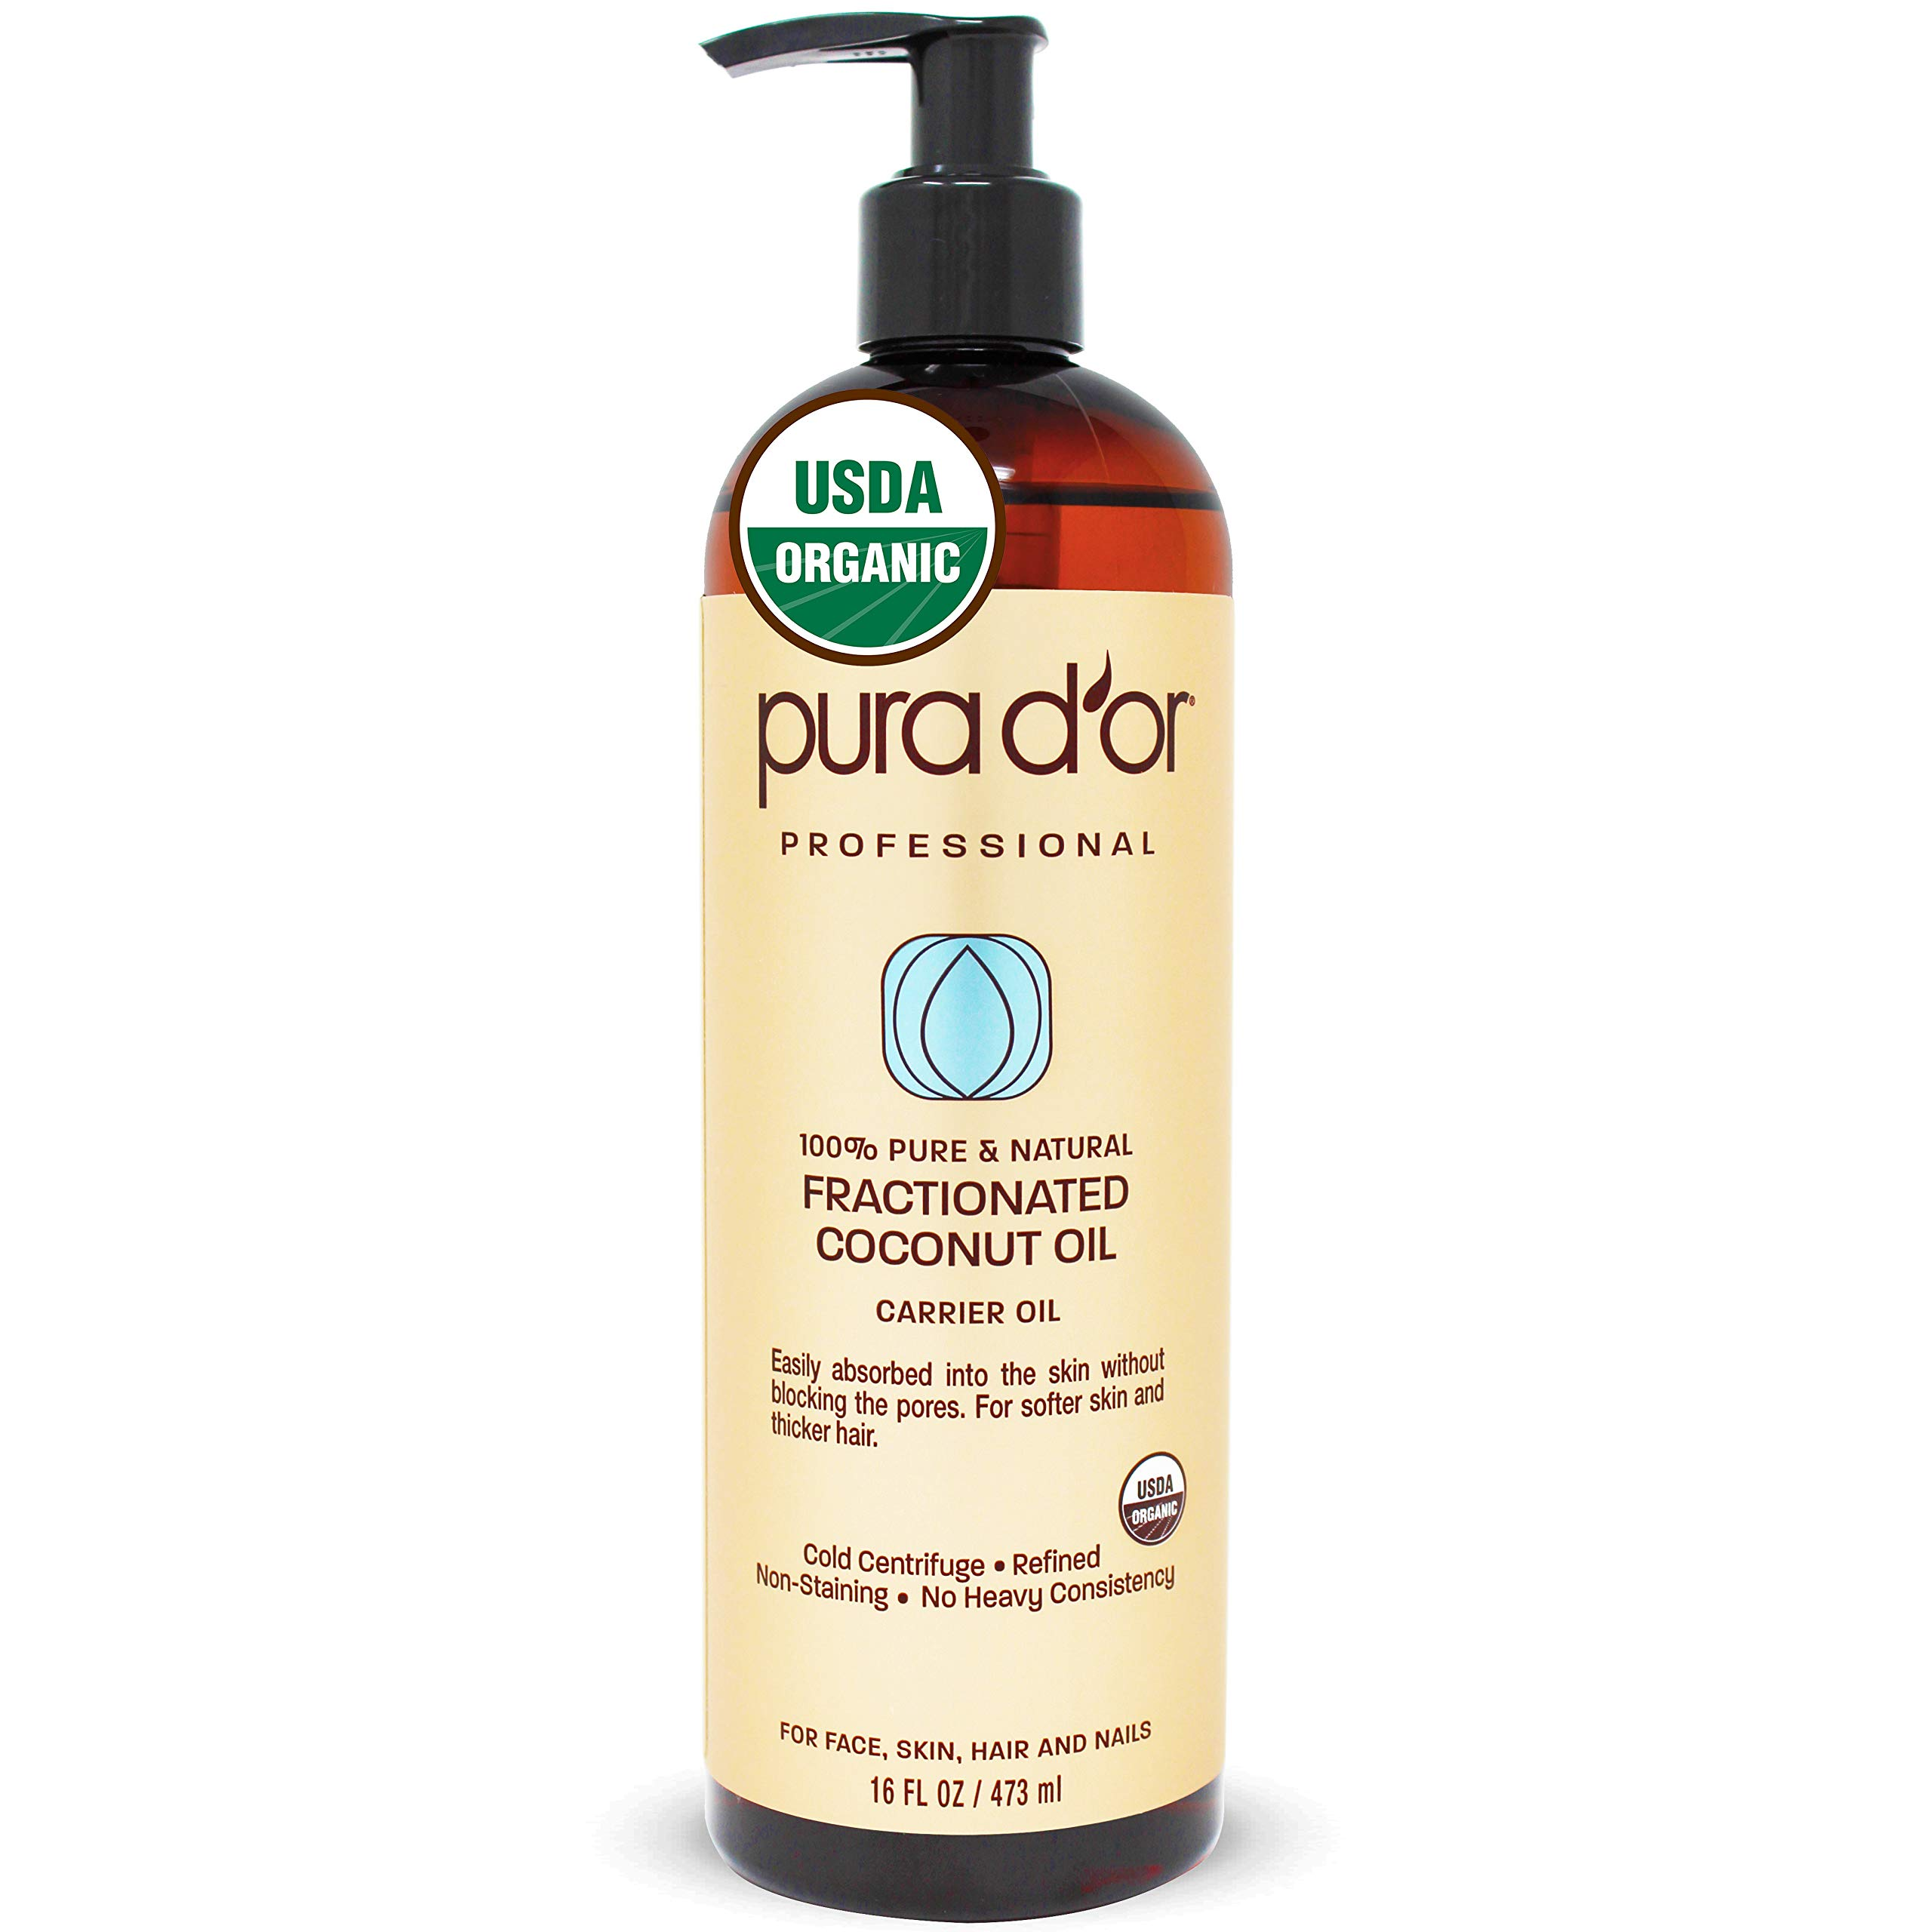 PURA D'OR Carrier Oil: Organic Fractionated Coconut Oil 16 oz - USDA Certified Organic 100% Pure & Natural Hexane Free Moisturizing Carrier Oil For Face, Skin, and Hair by PURA D'OR